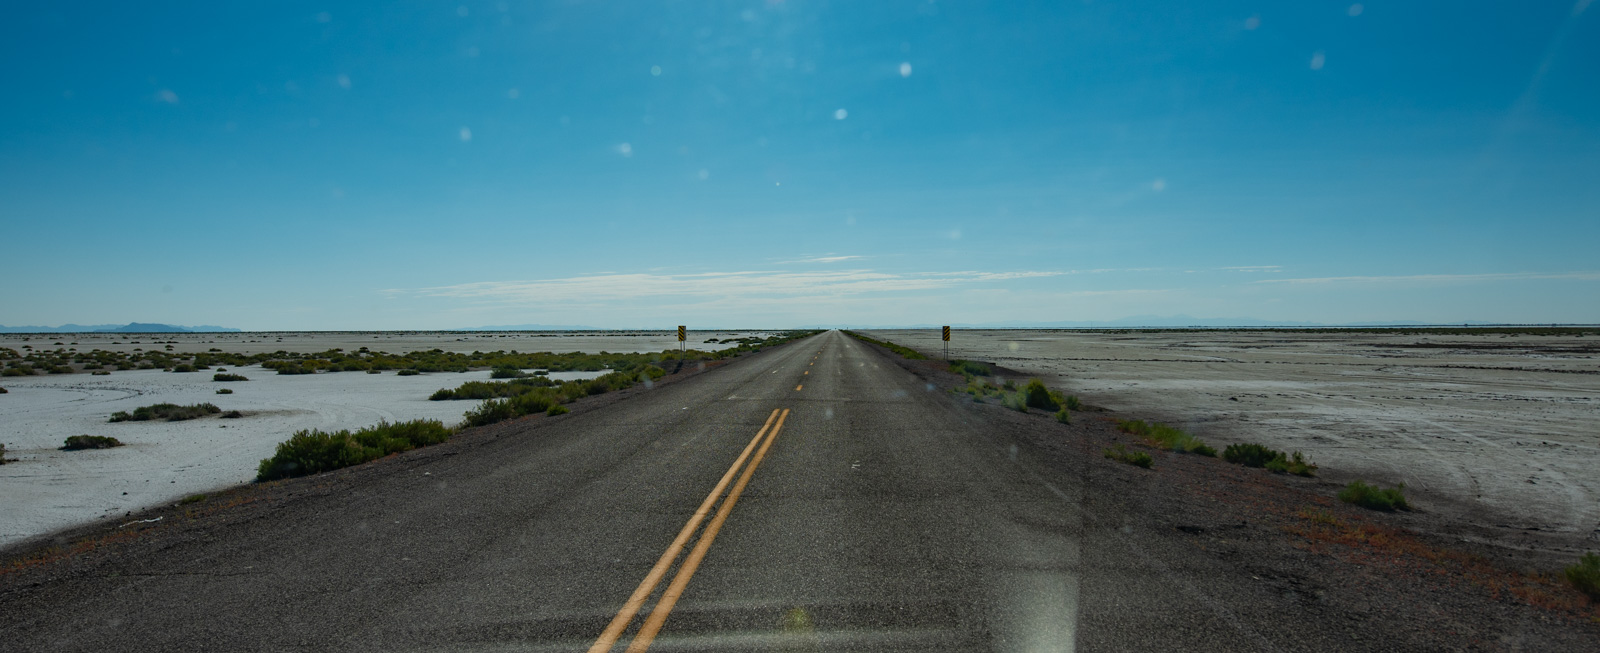 Road to nowhere, salt flats